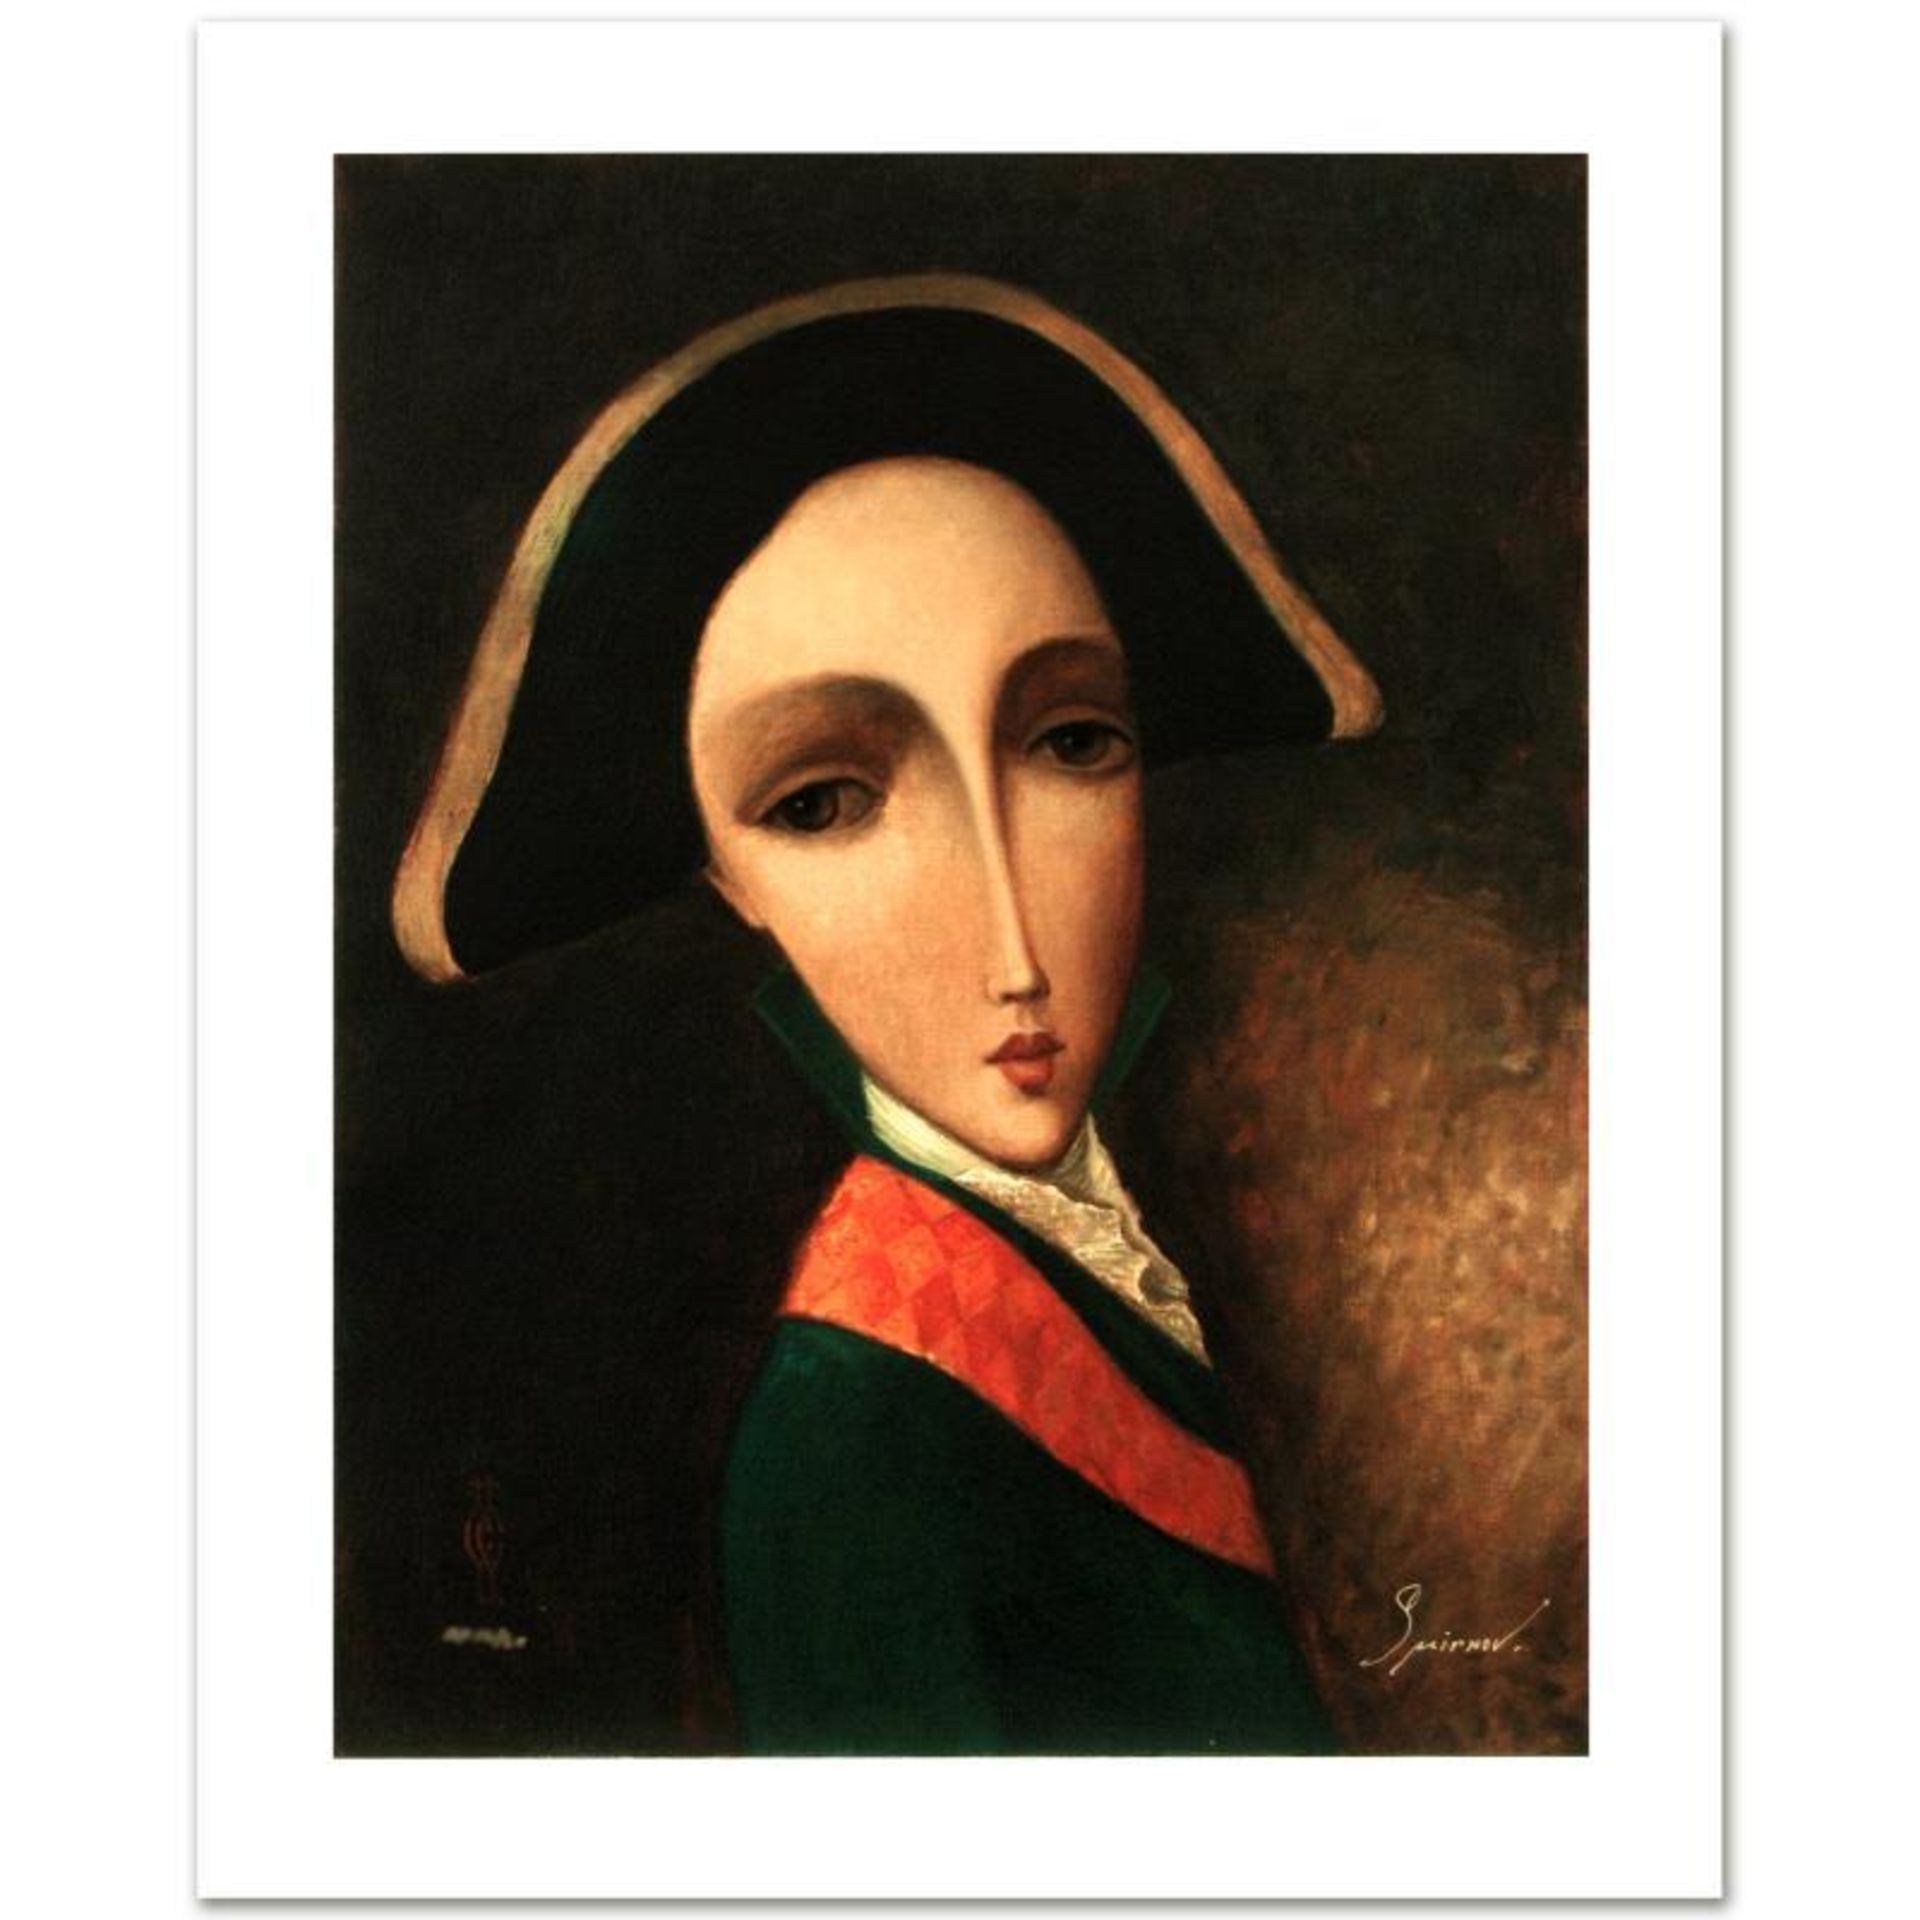 """Sergey Smirnov (1953-2006), """"Peter The Great: The Young Czar"""" Limited Edition Mi"""